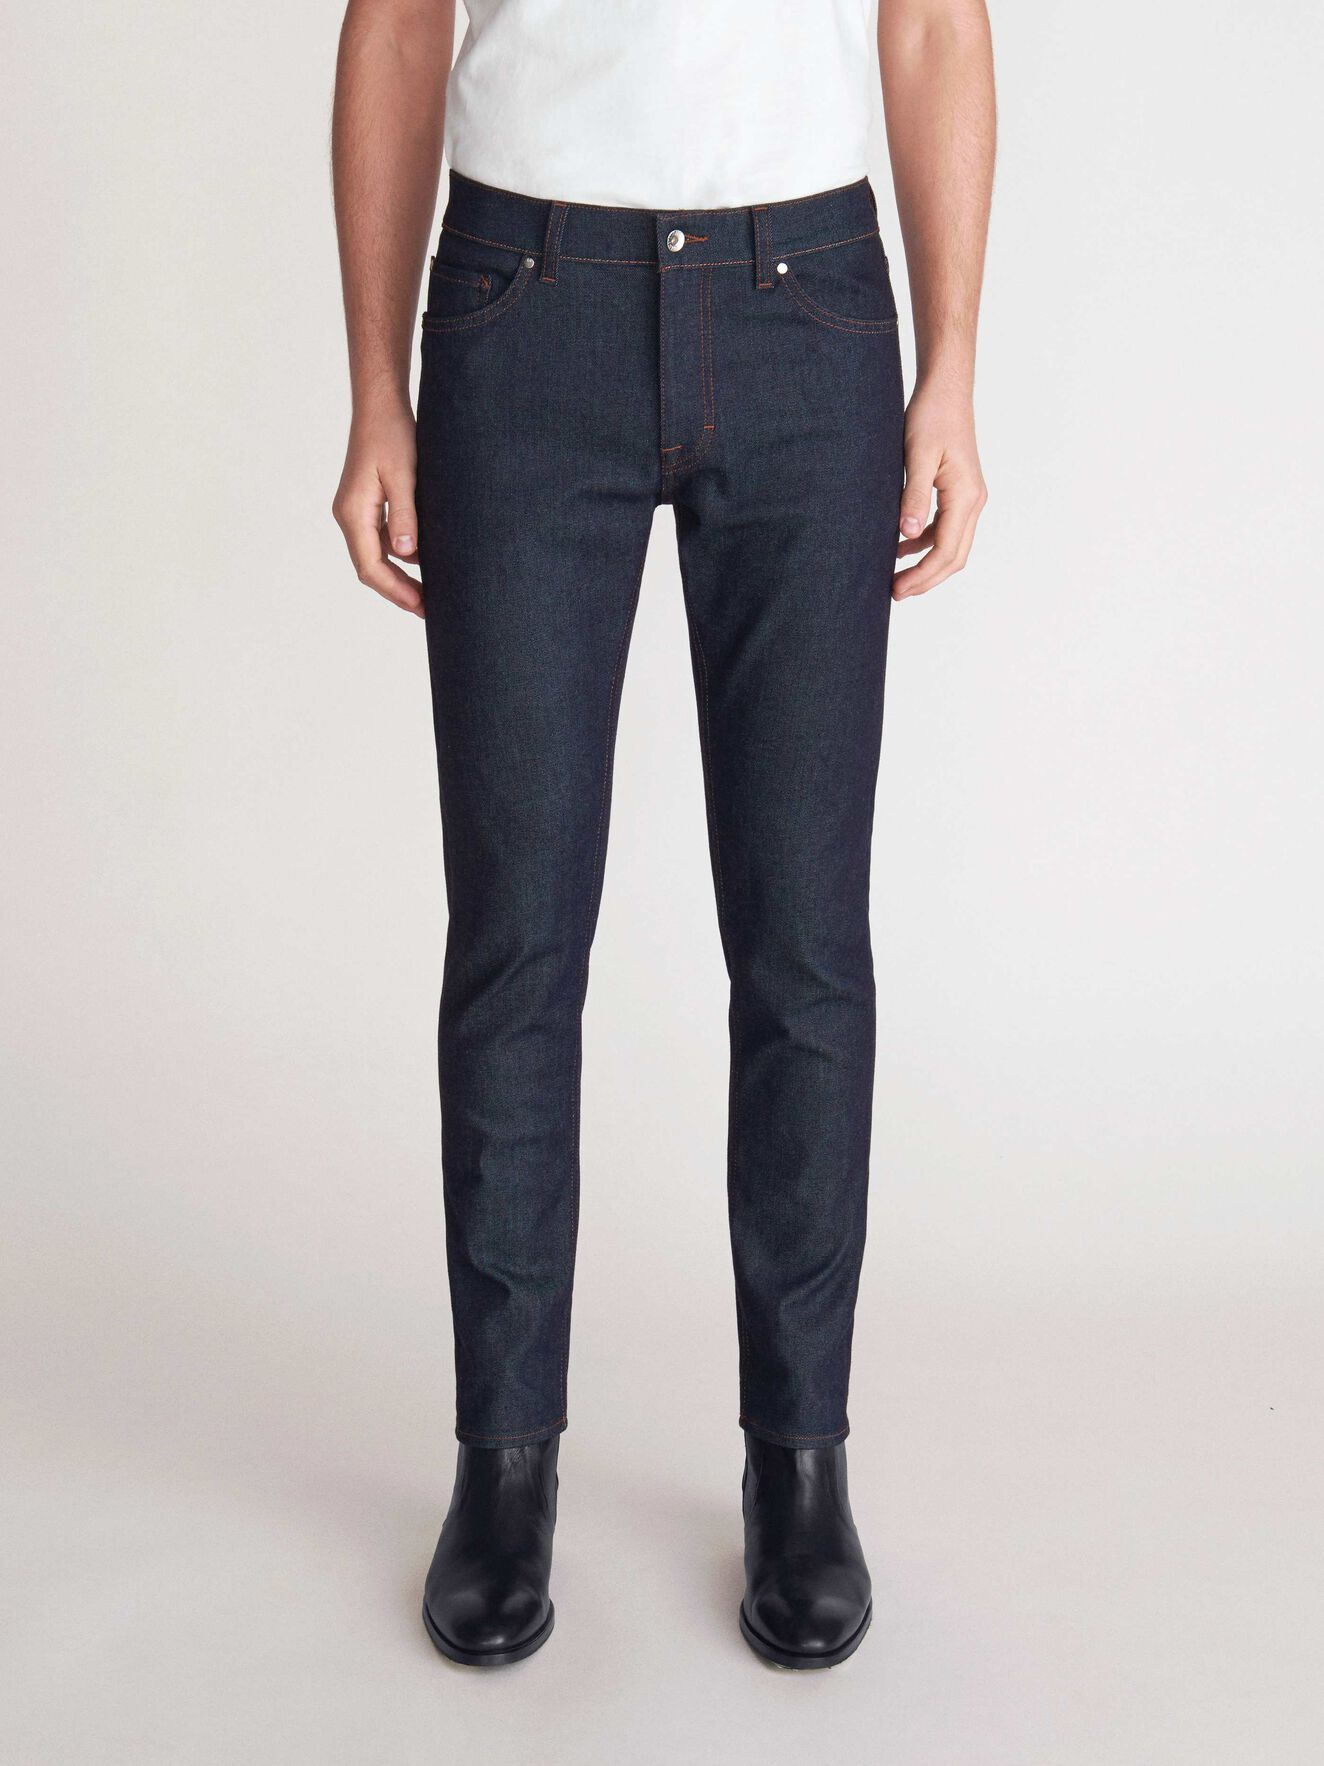 Evolve Jeans in Midnight blue from Tiger of Sweden